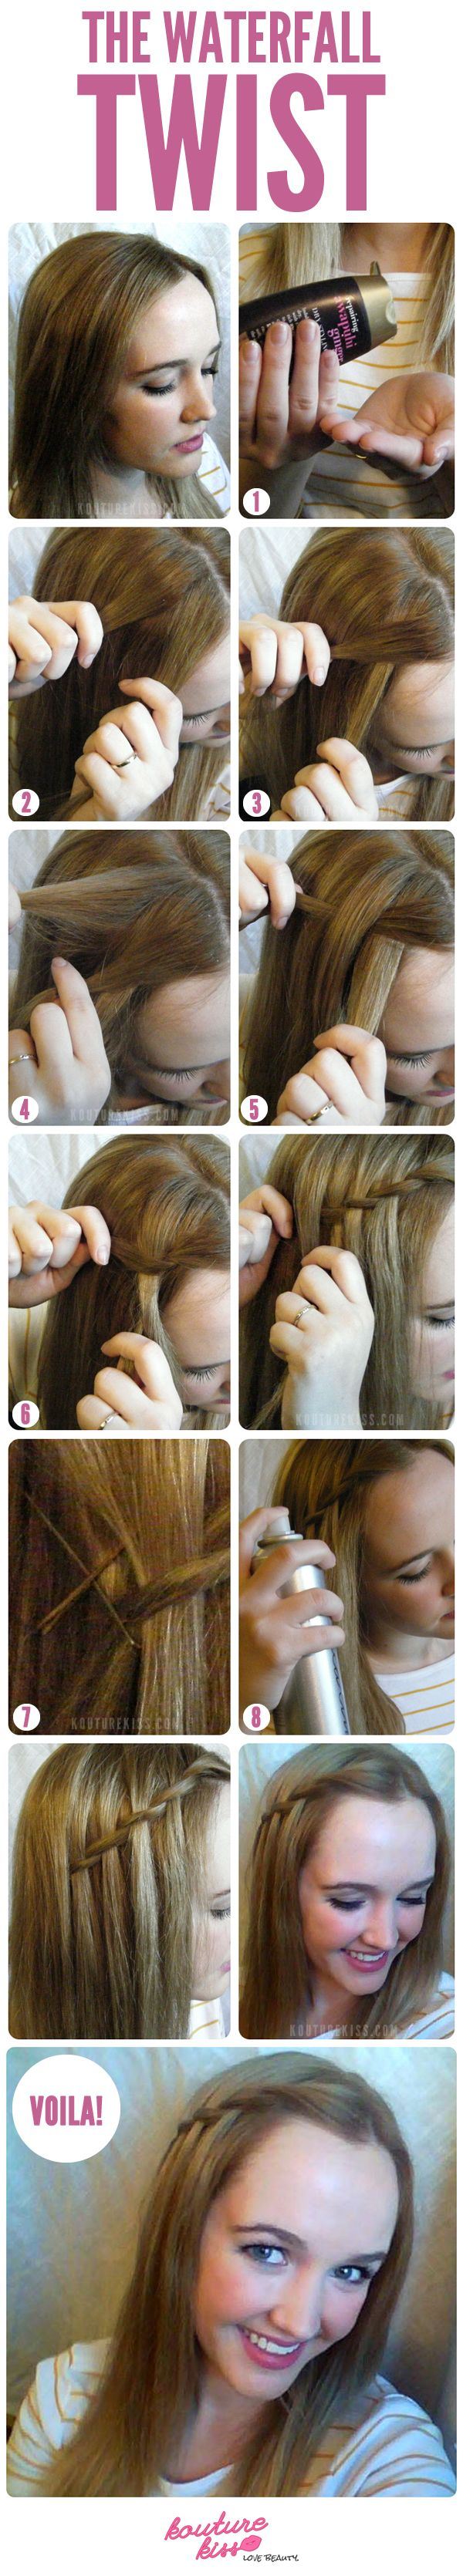 #beautyandhairtips #thewateralltwist #howto